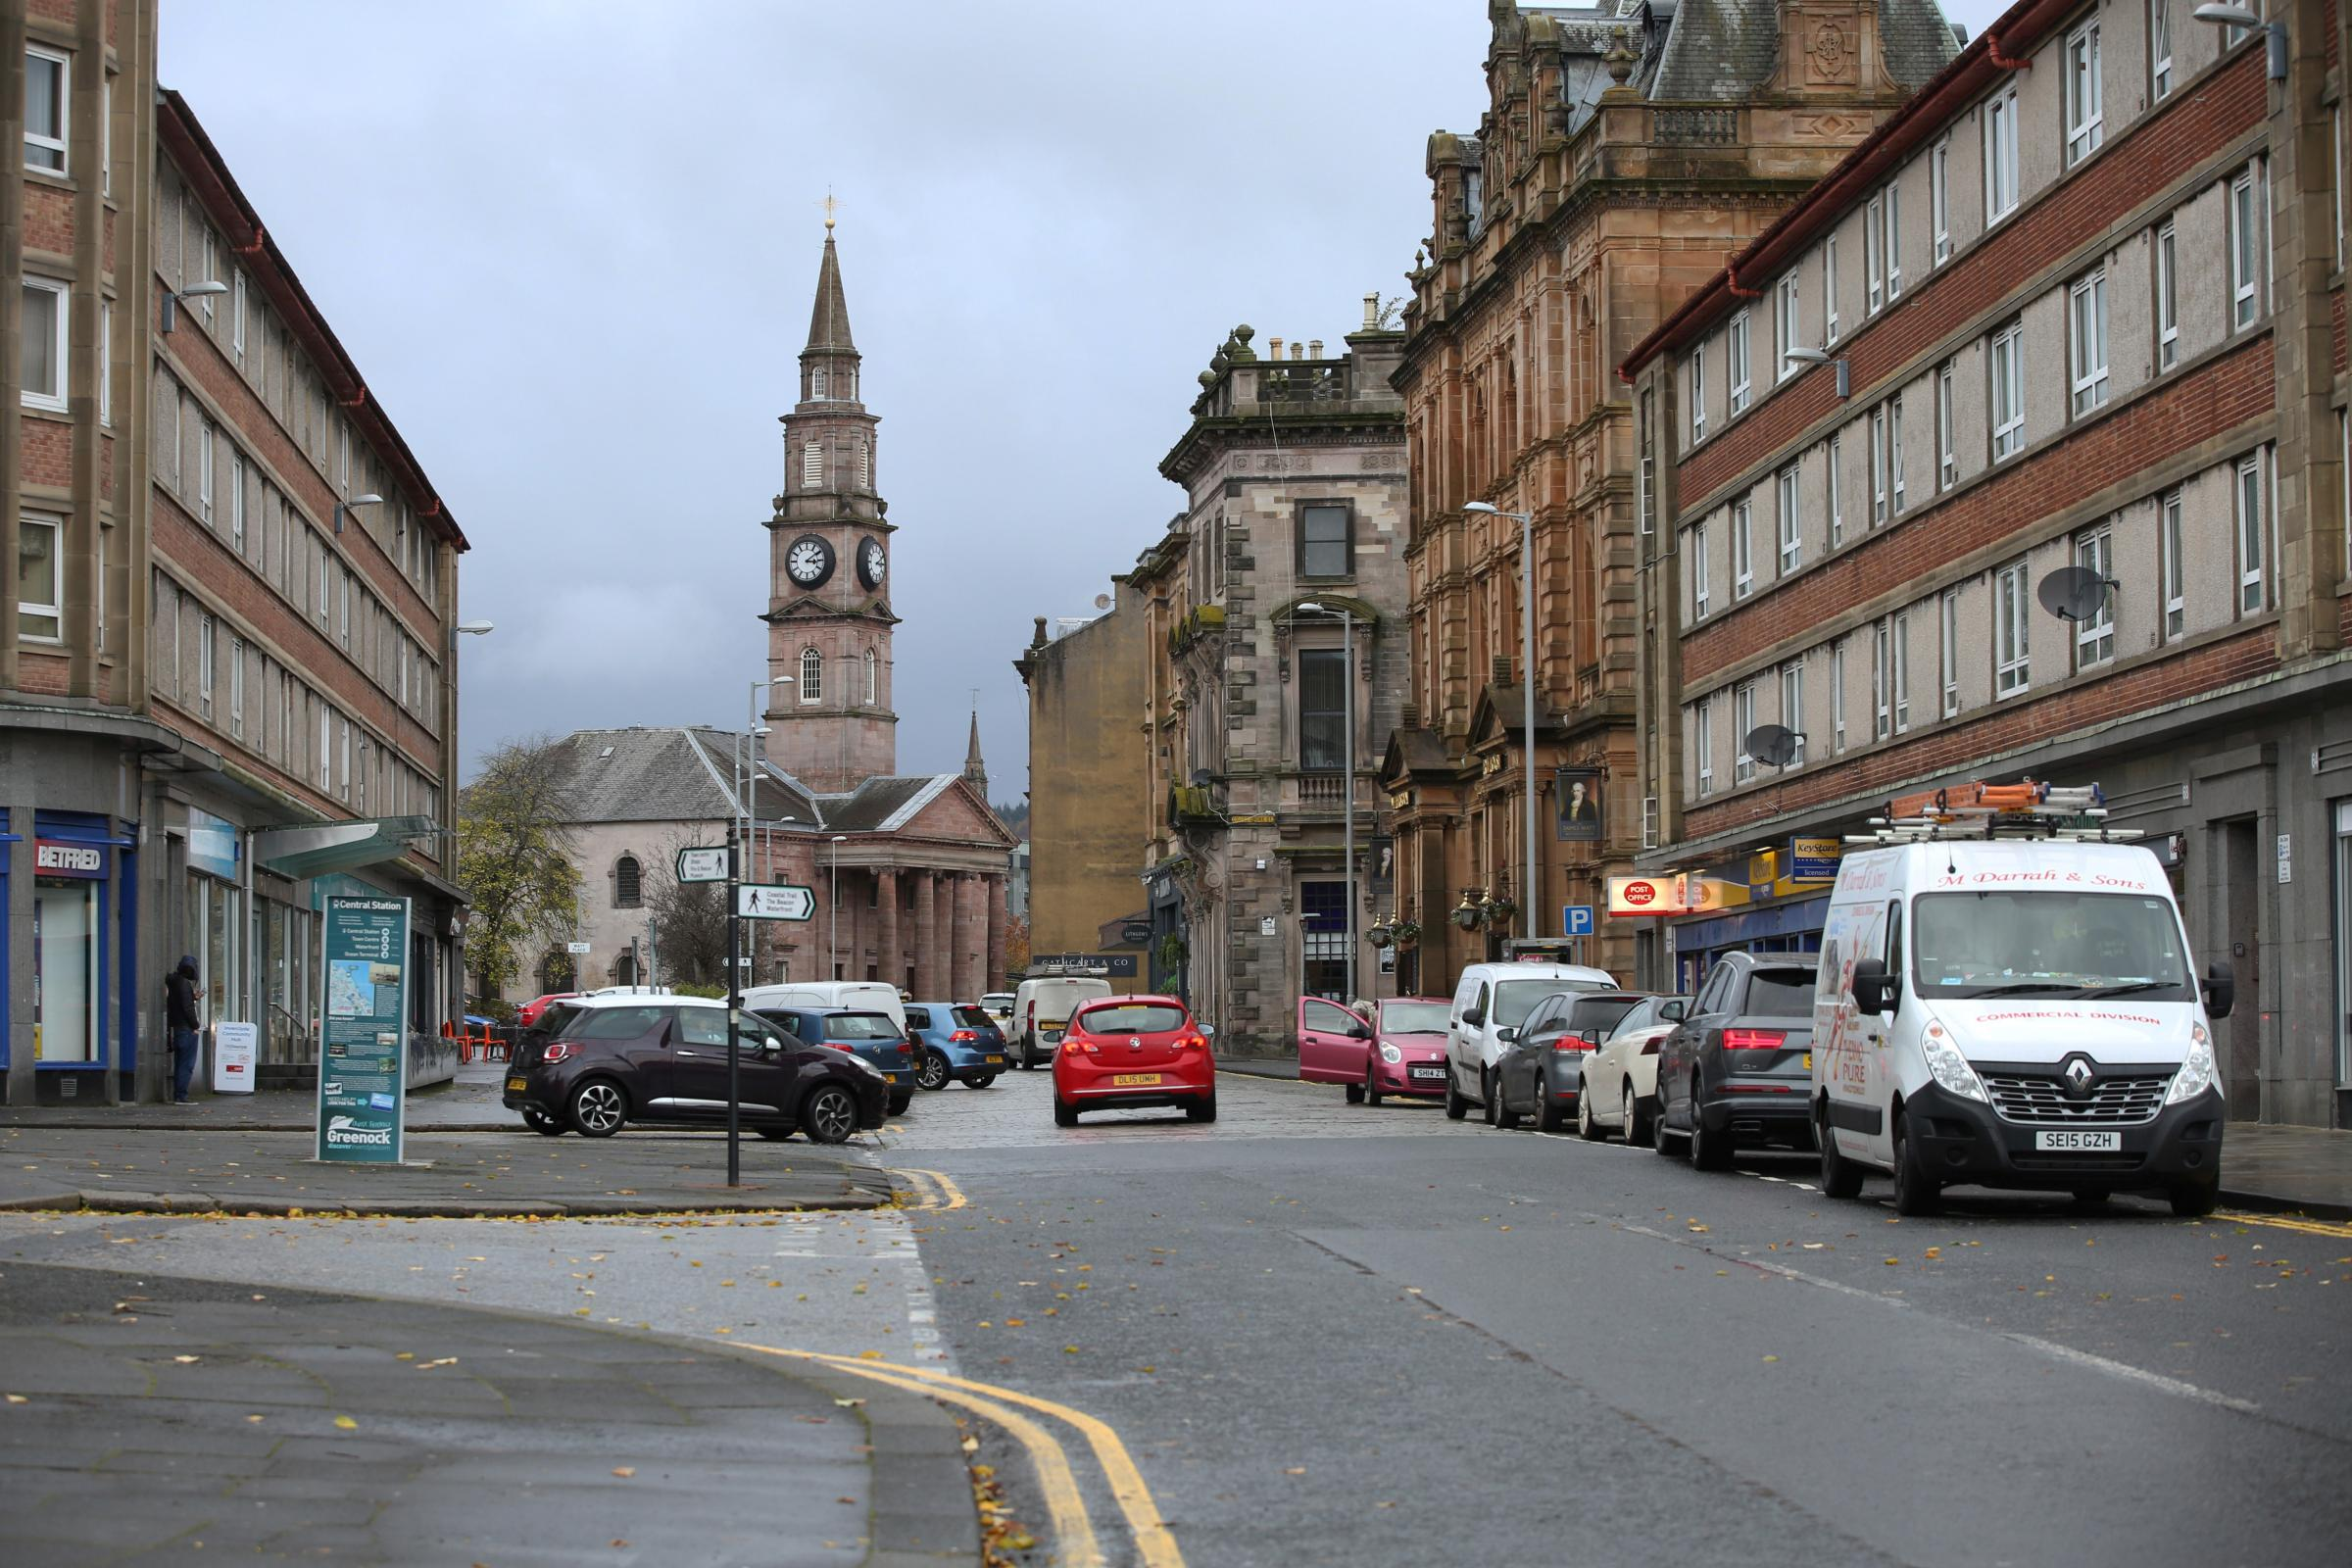 The attack happened outside Lithgows, in Cathcart Street.